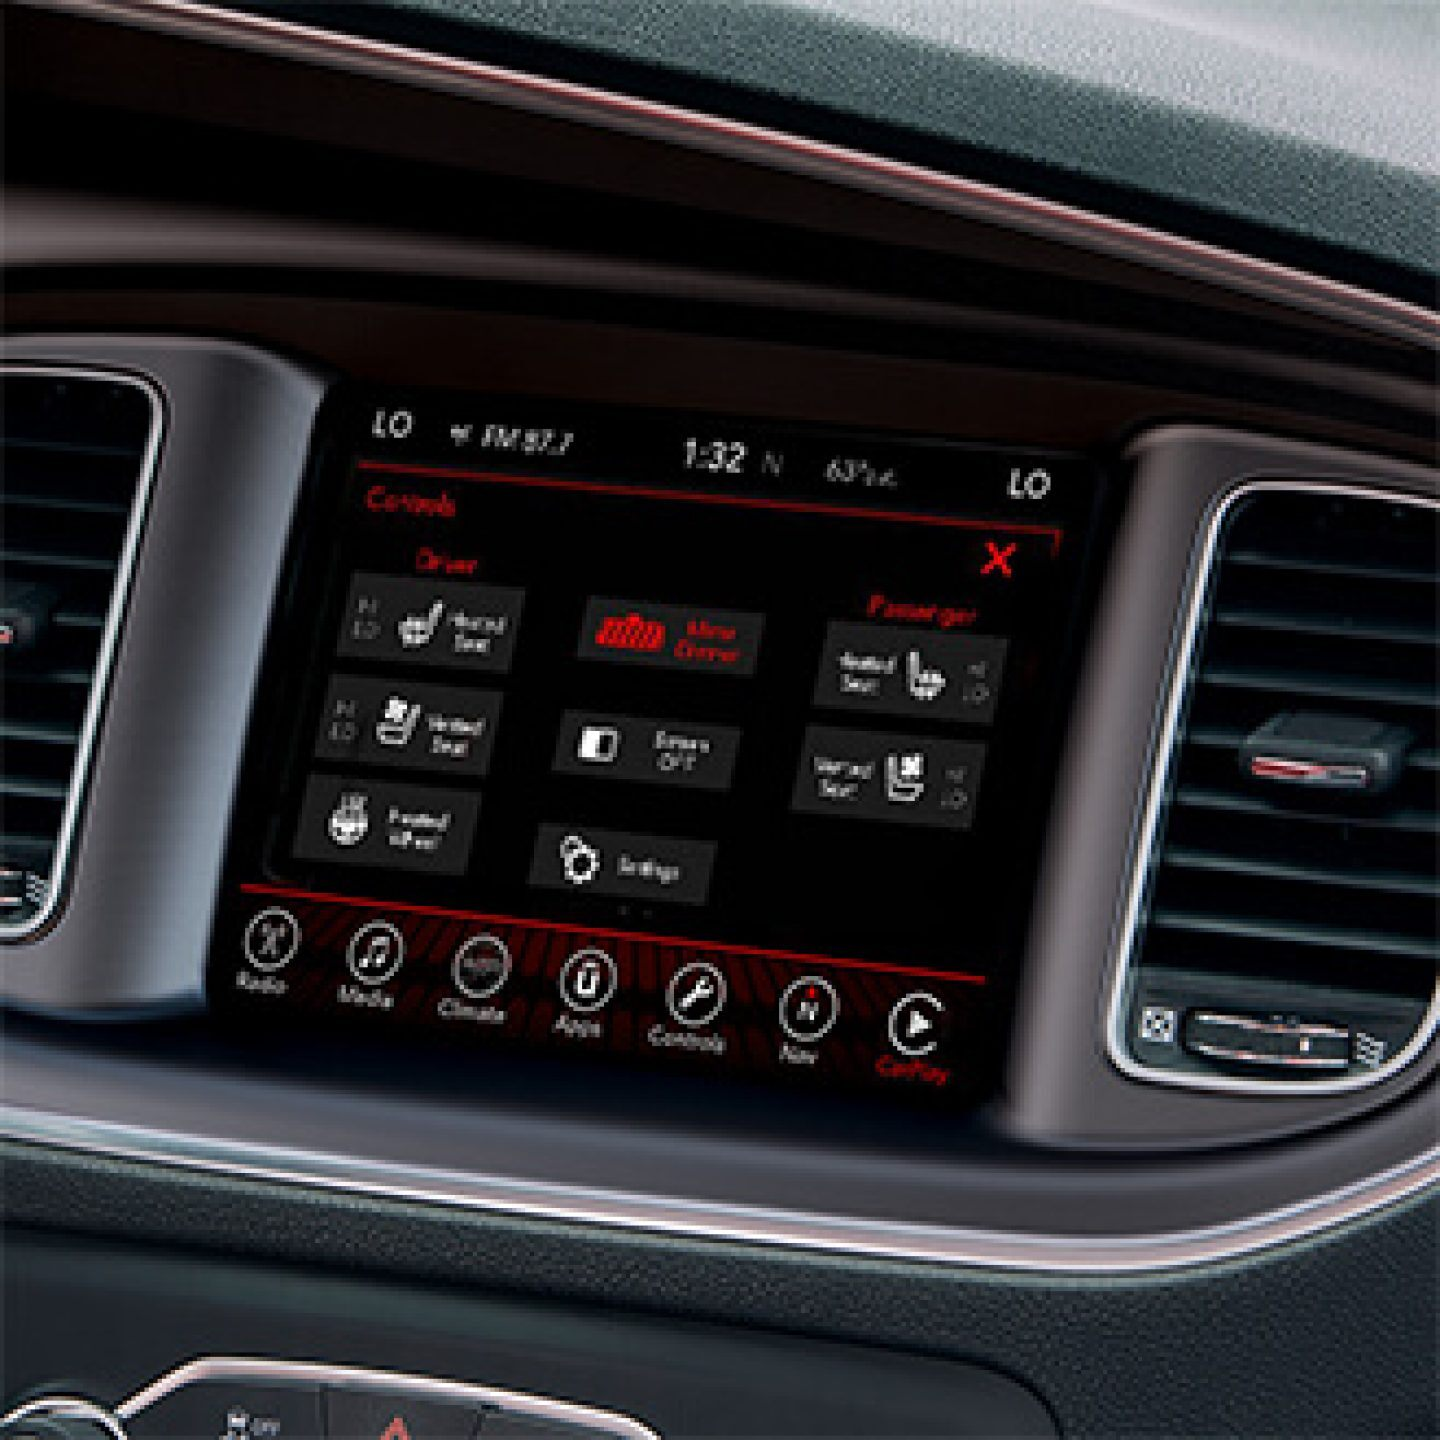 2020-dodge-charger-interior-4c-nav.jpg.image.1440